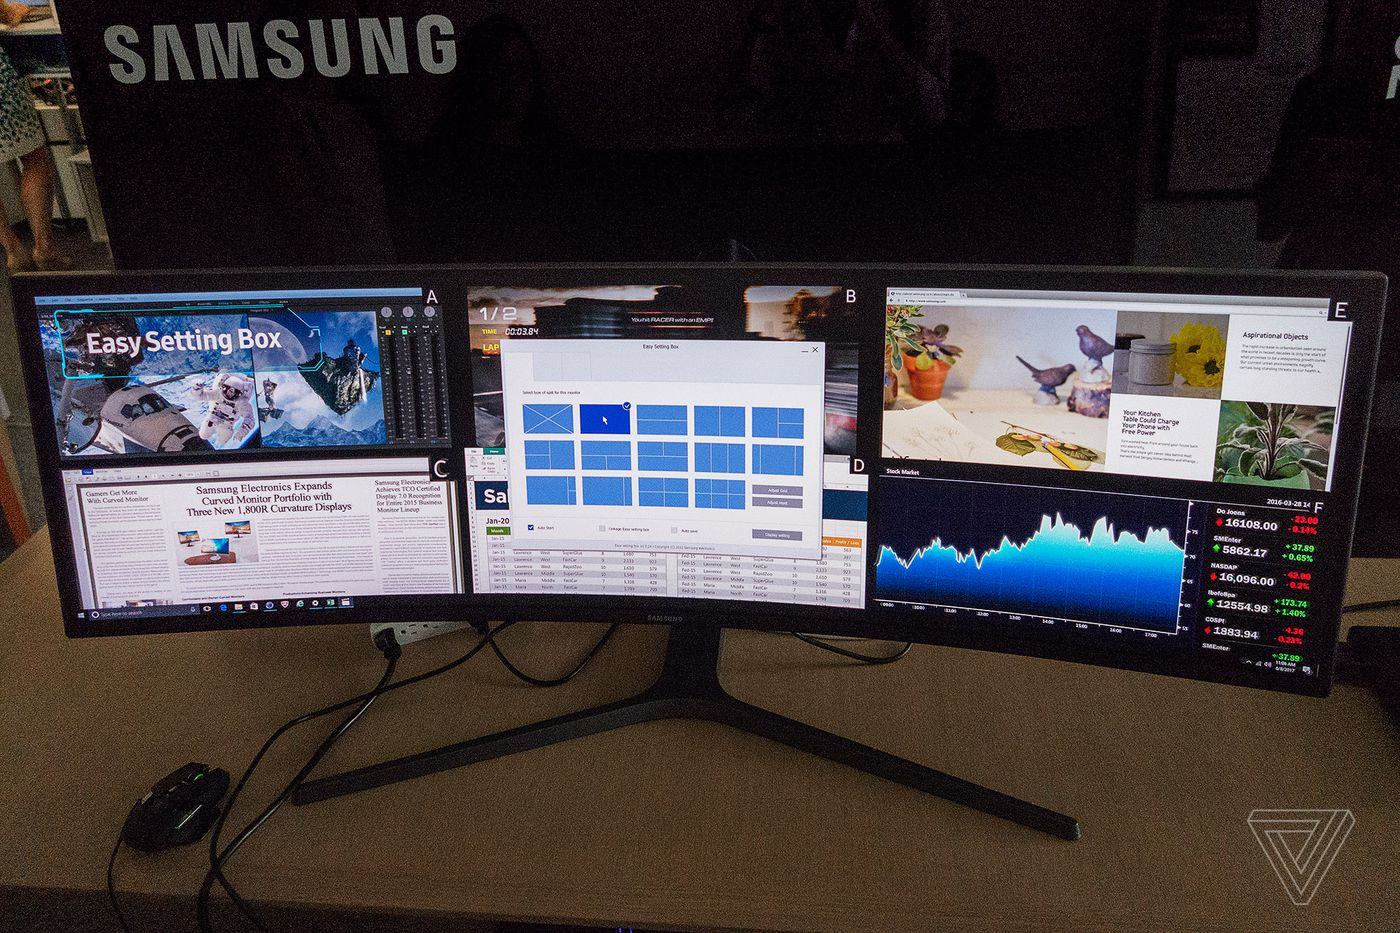 Samsung's 49-inch ultrawide curved display is basically just half a